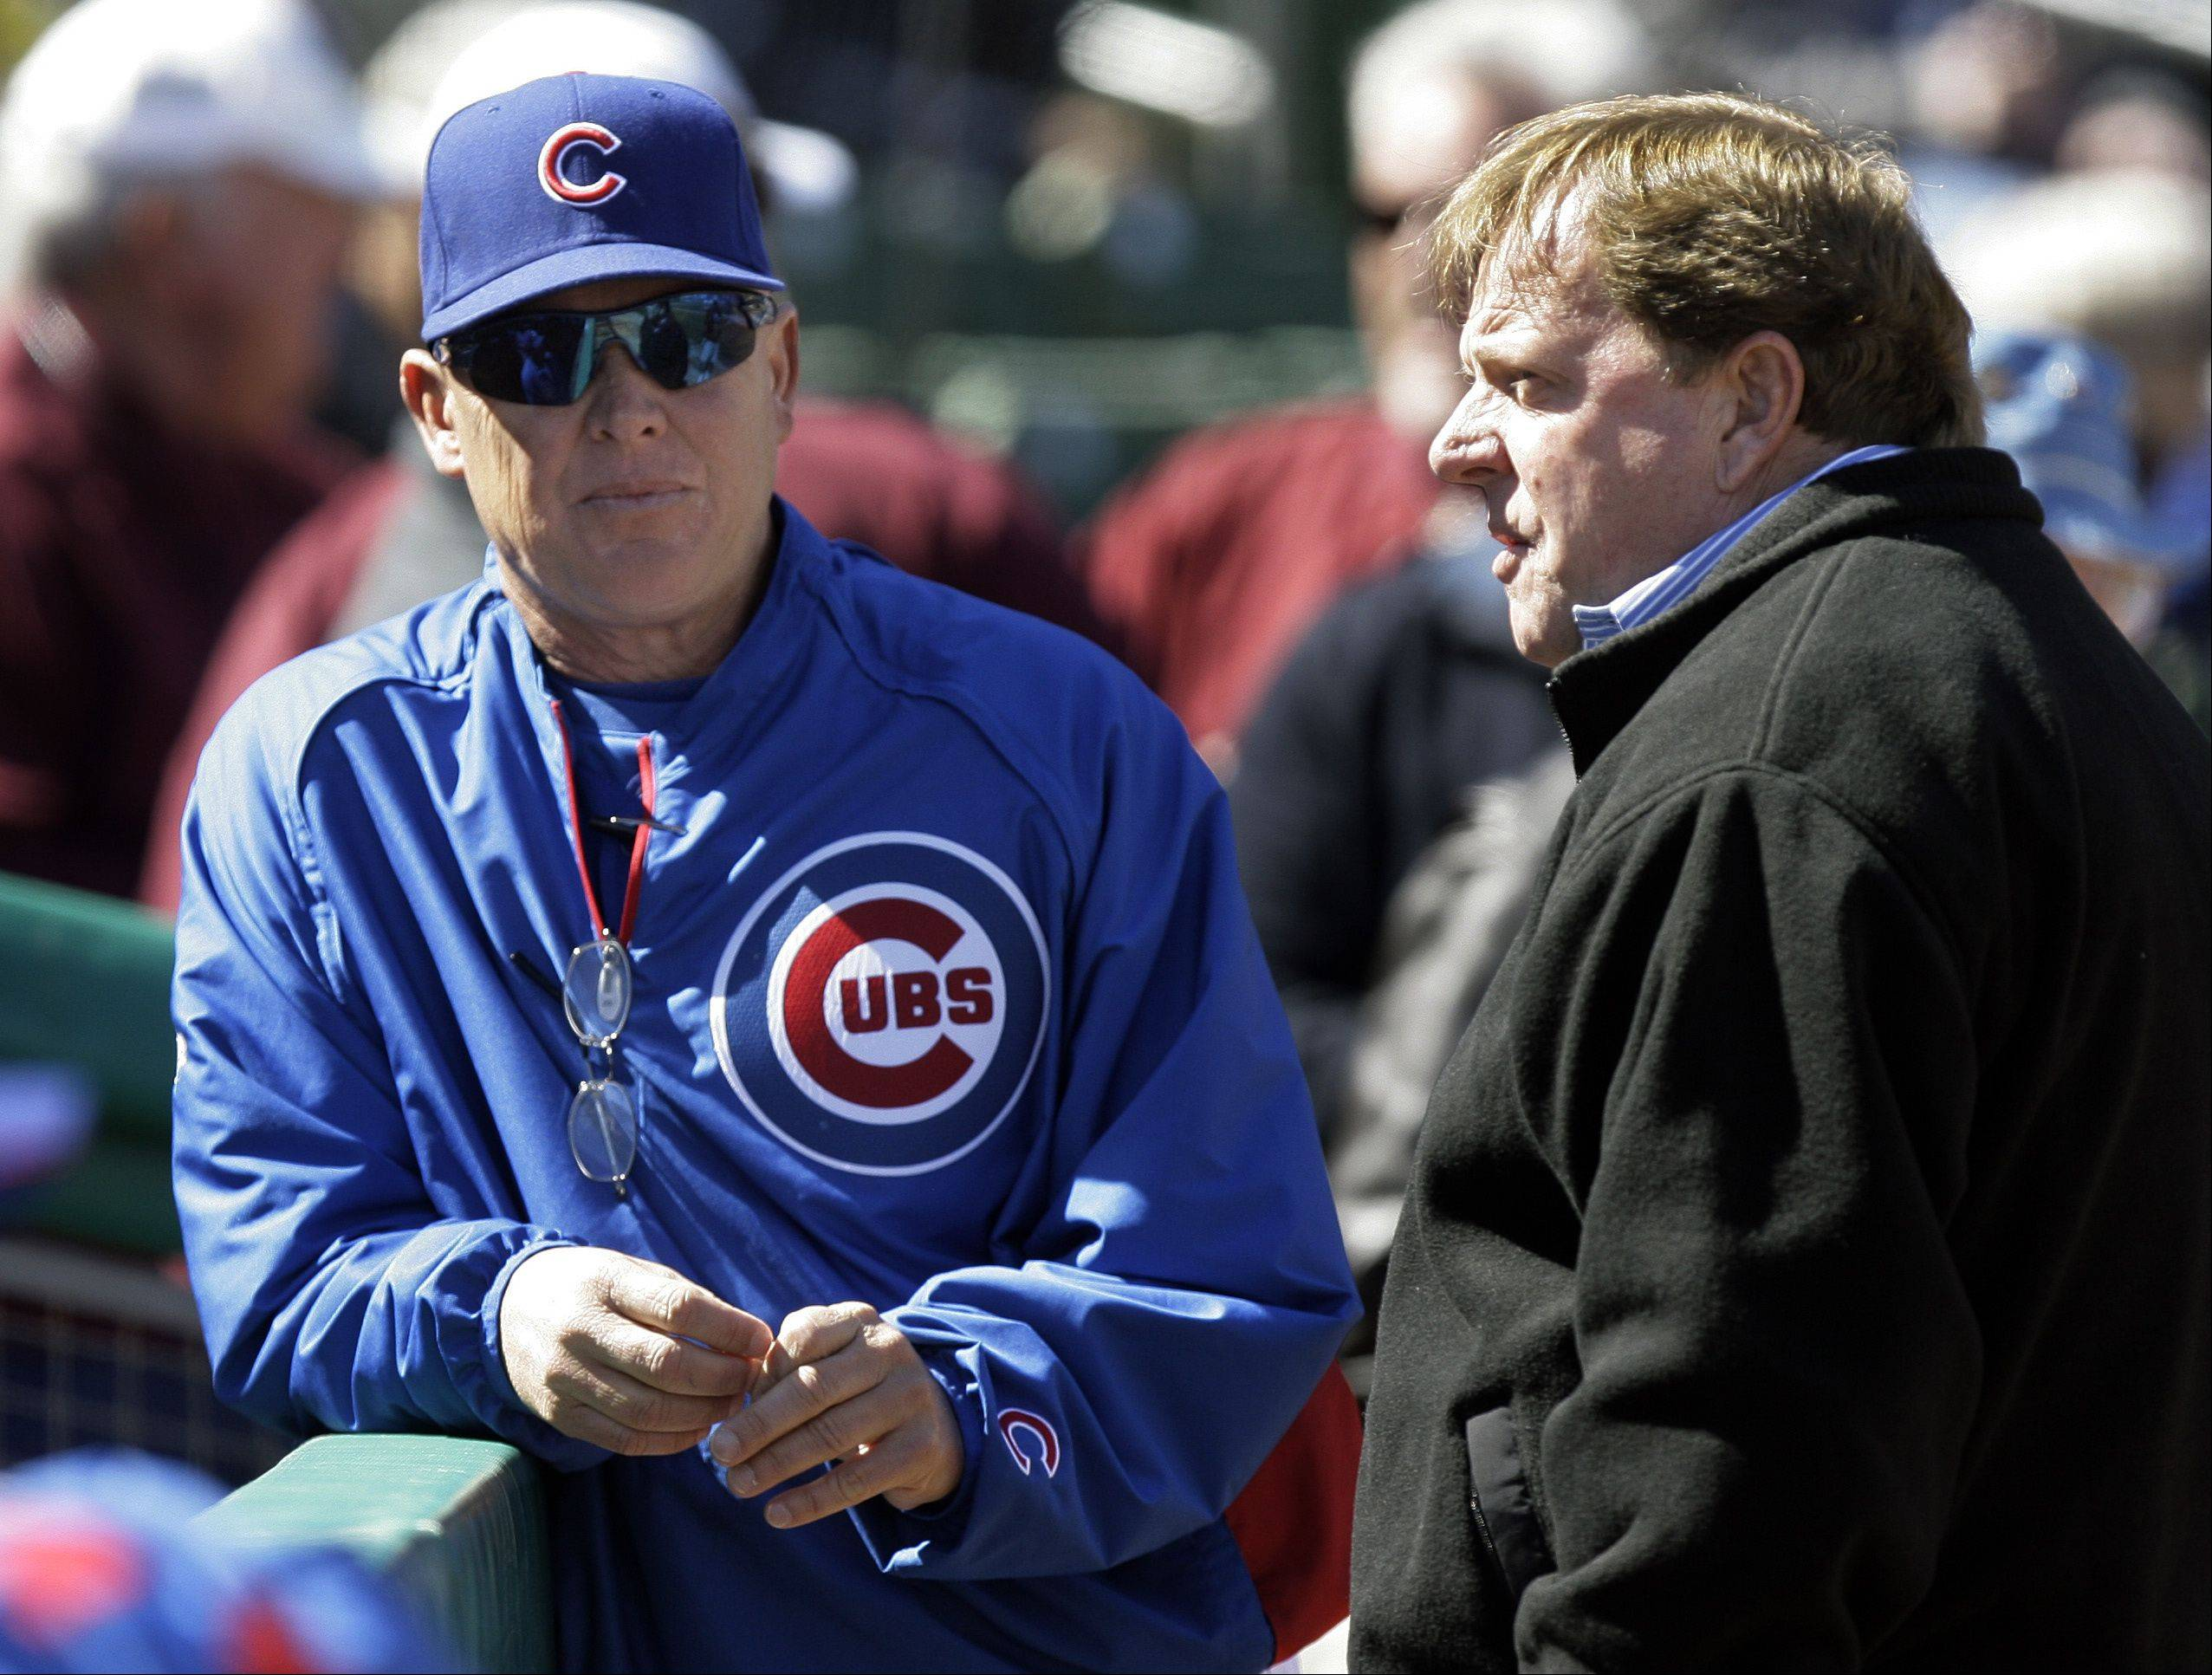 Last January Jim Hendry hired Mike Quade as the Cubs new manager, and now both of them are gone. Cubs president Theo Epstein said the search for a new manager has begun.